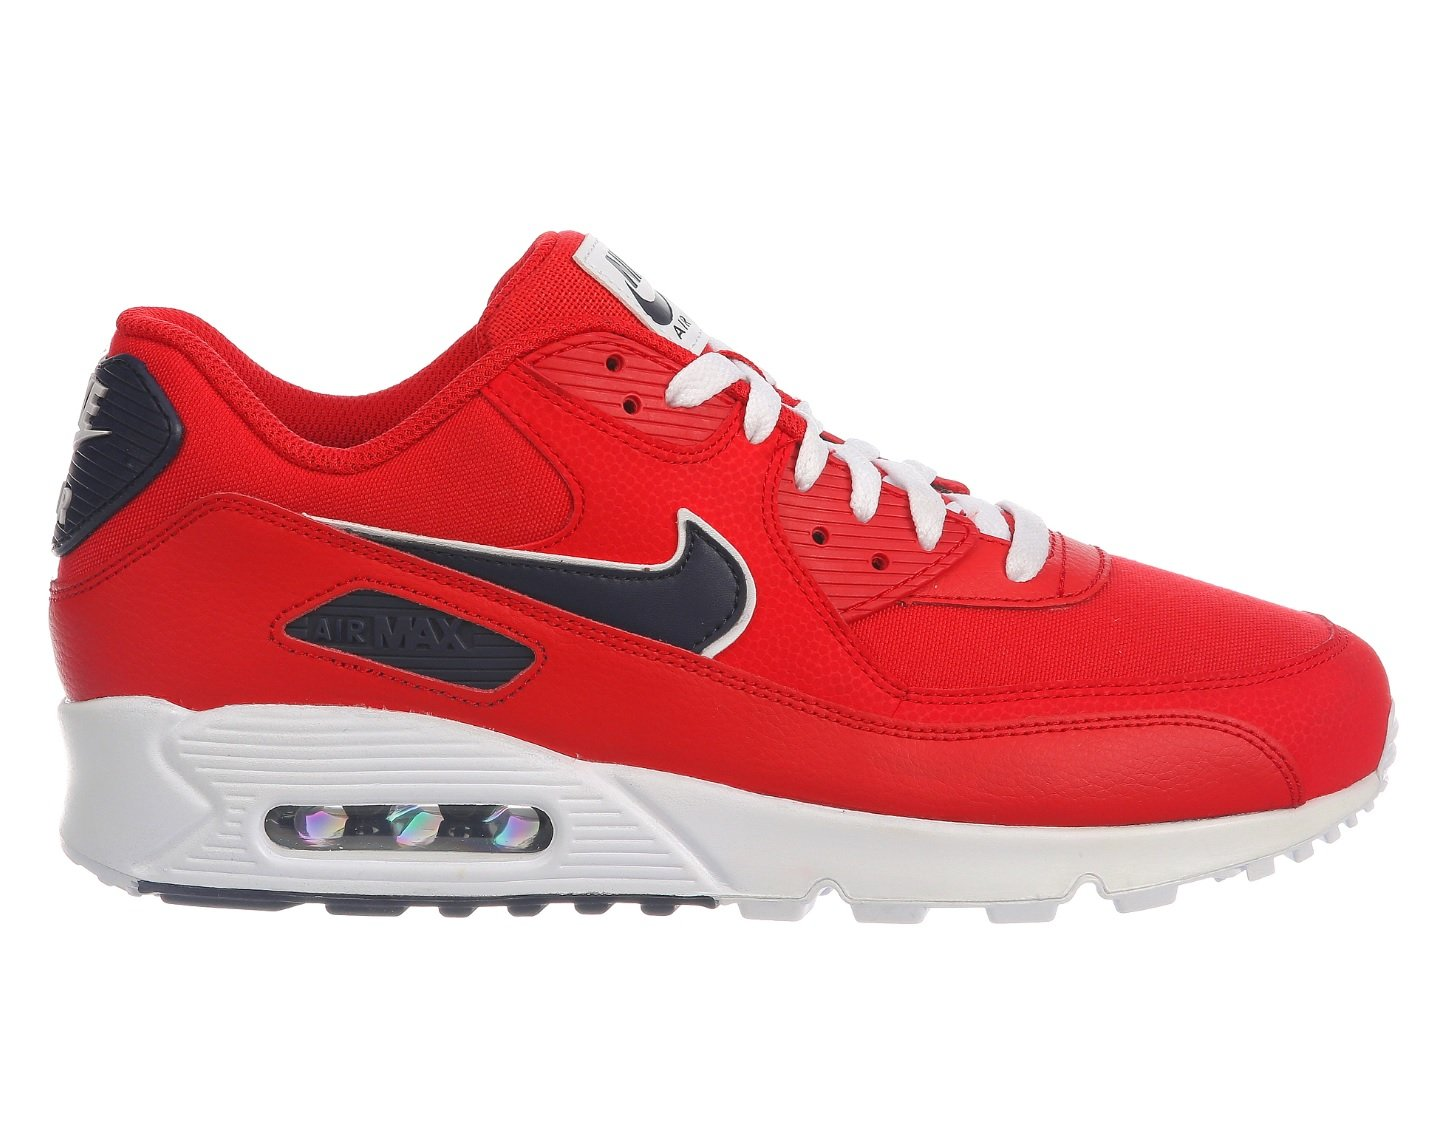 promo code c8e71 e1b34 Galleon - Nike Mens Air Max 90 Essential Running Shoes University Red Blackened  Blue White AJ1285-601 Size 8.5